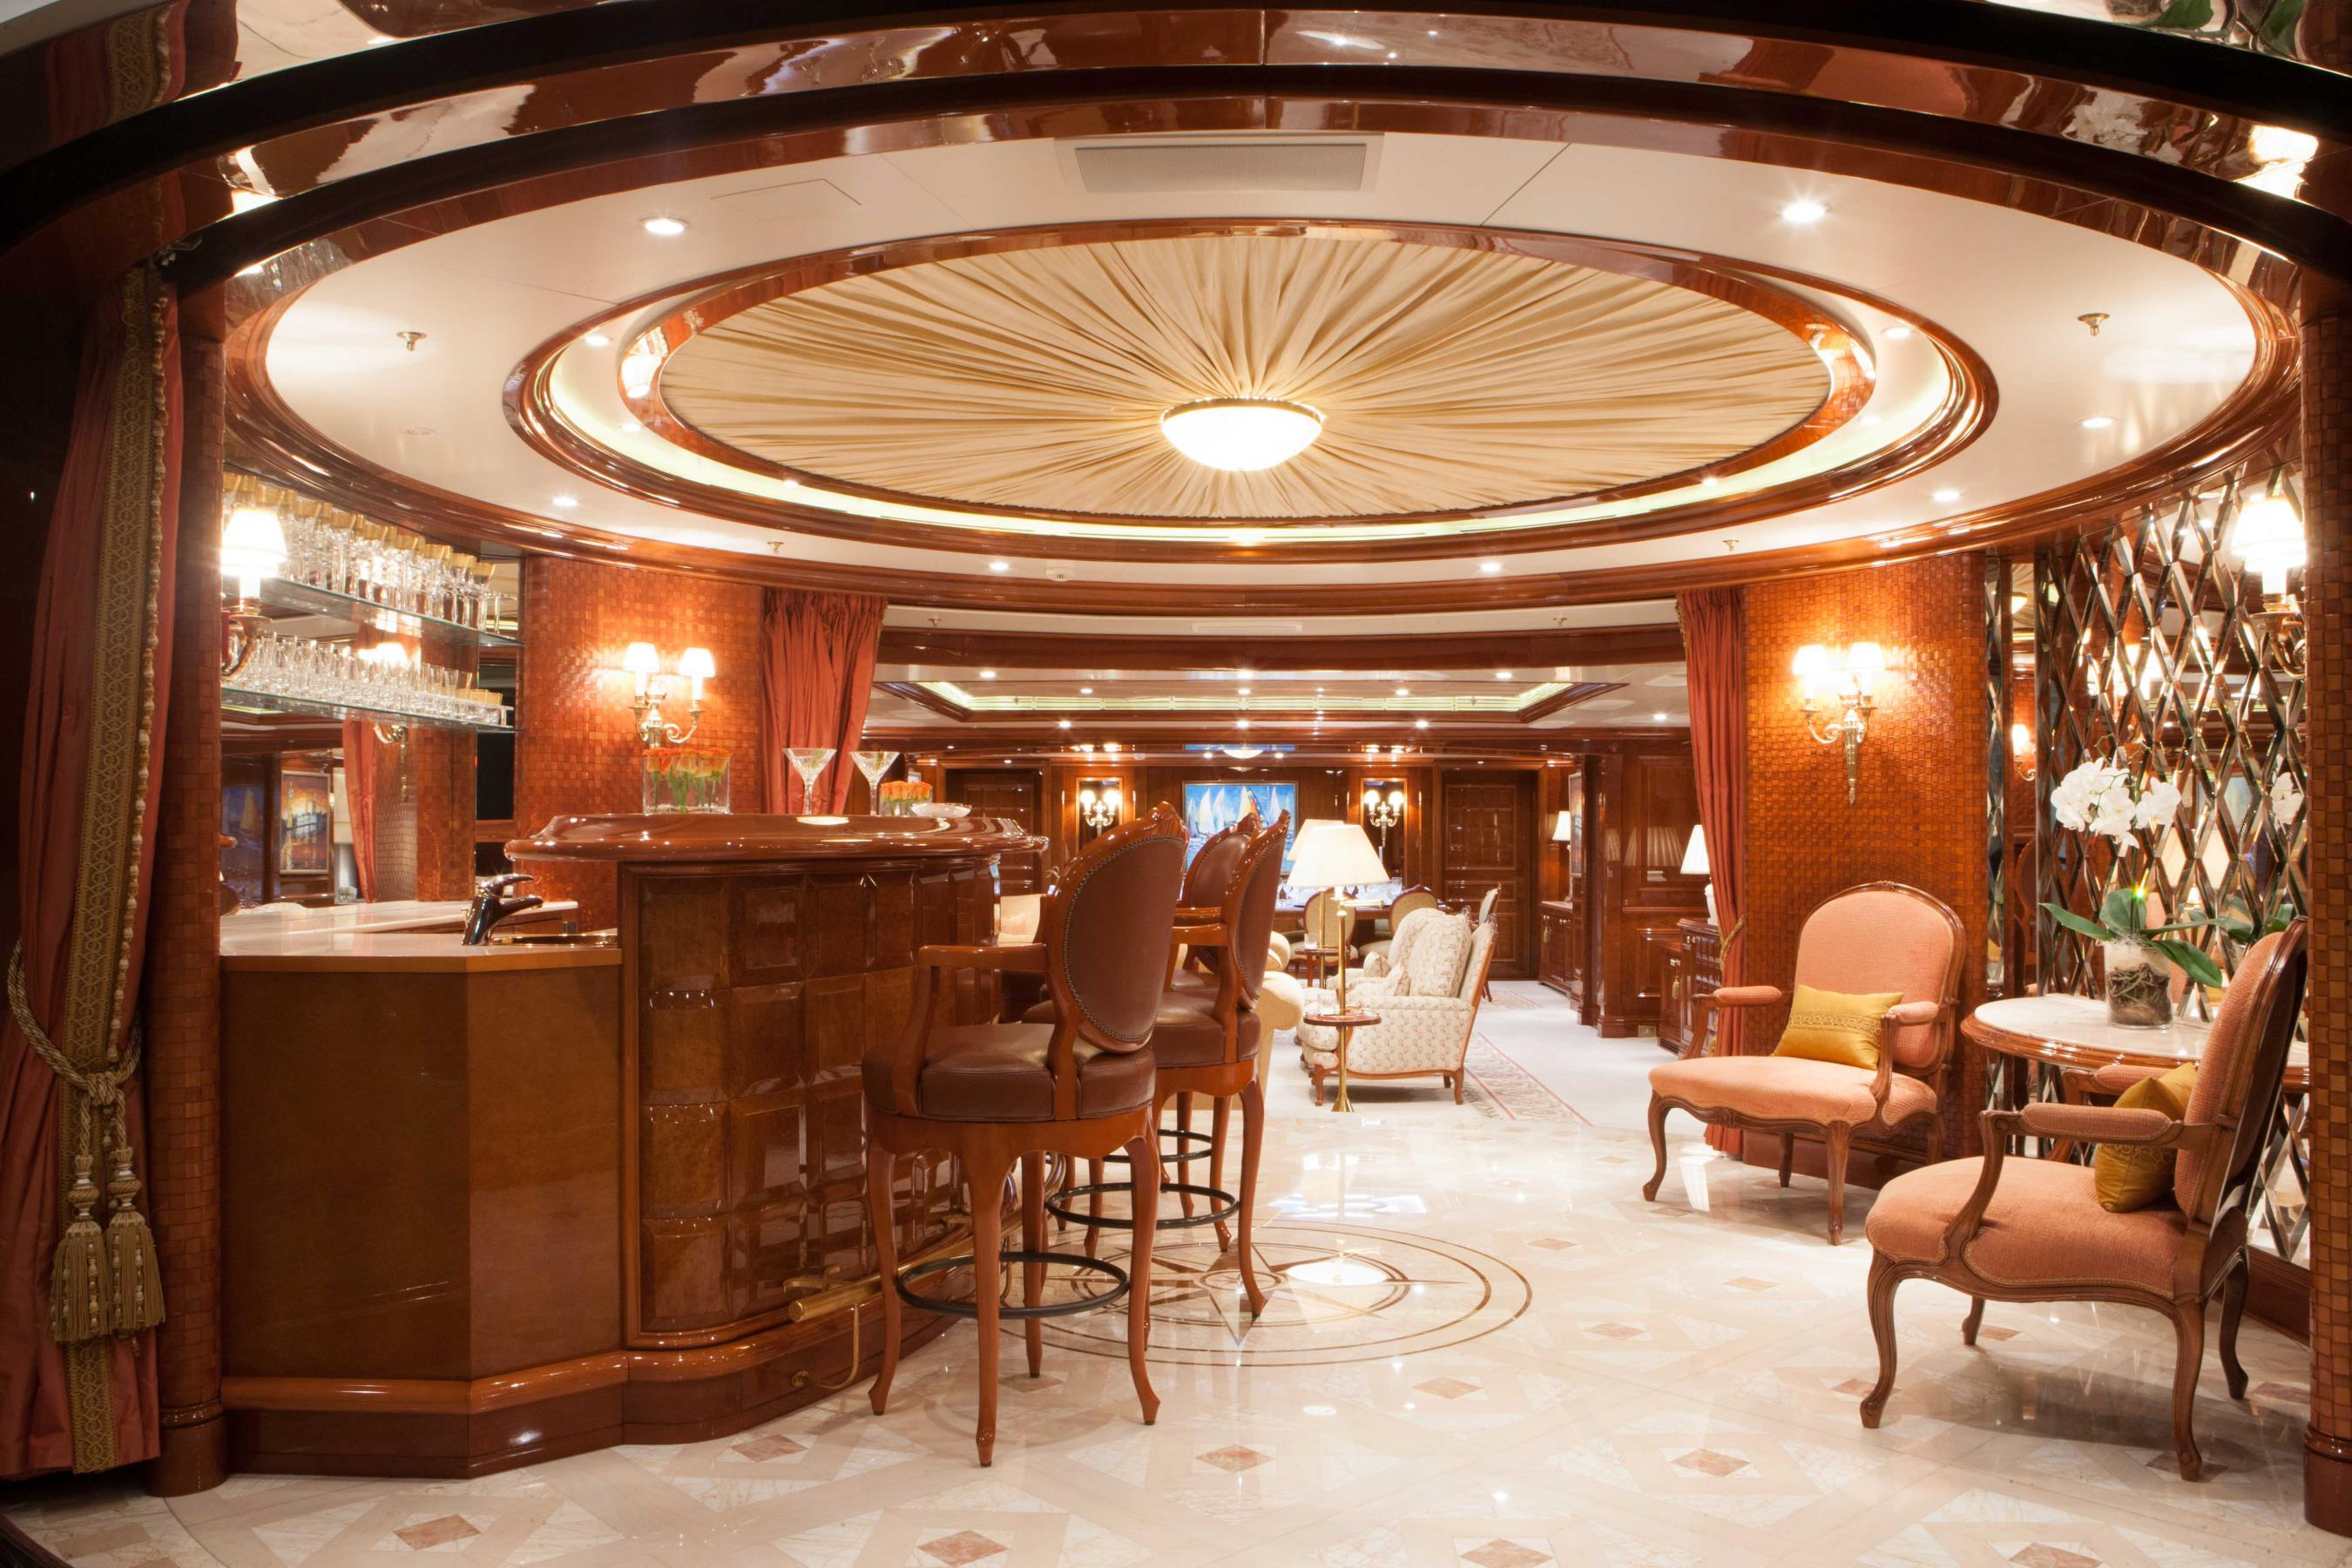 Main saloon with classic interior design and beautiful woodwork